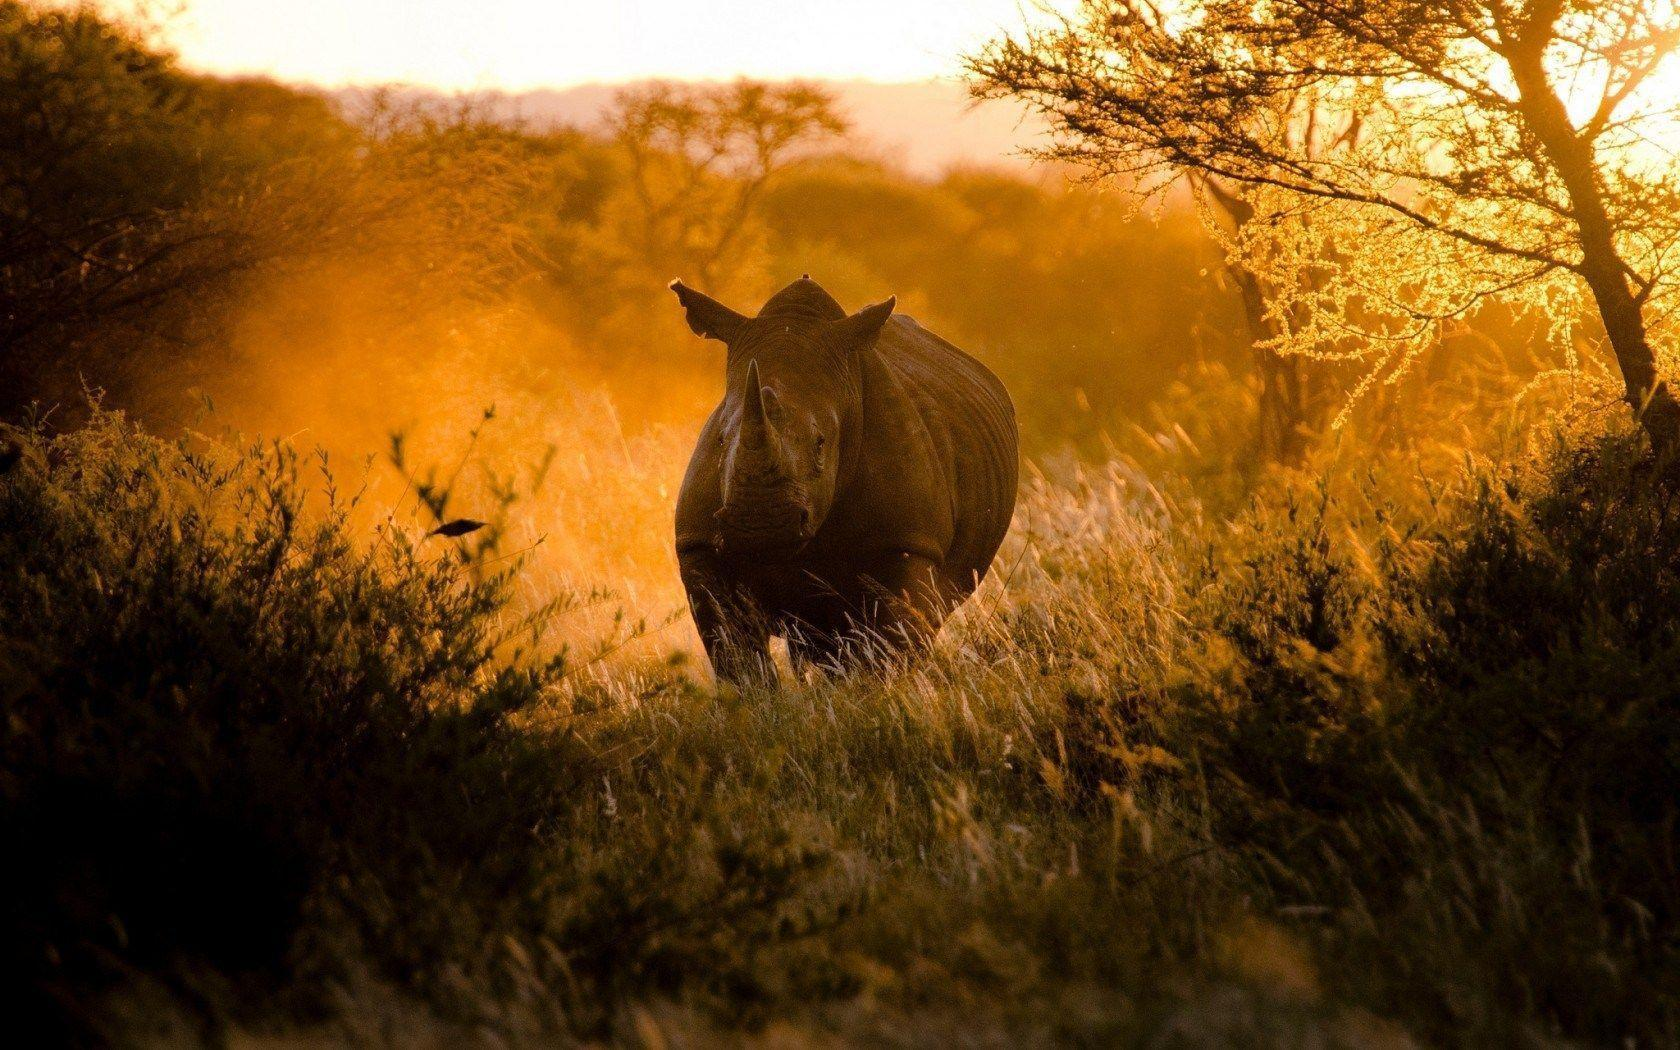 africa wallpaper | Free Top 10 High Definition Wallpapers